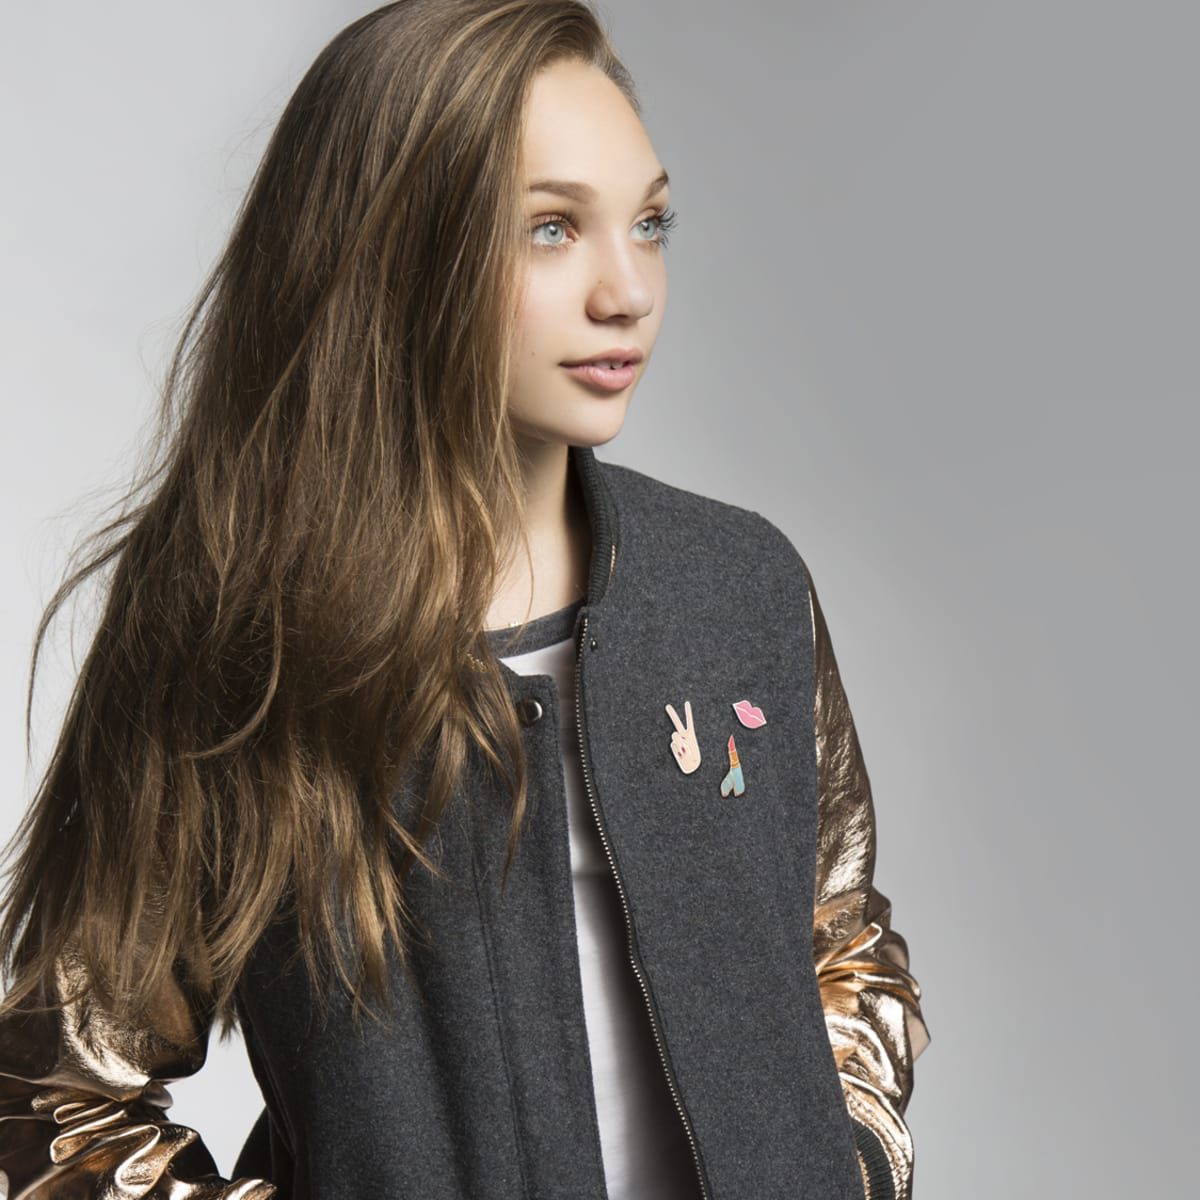 Maddie Ziegler Says Millie Bobby Brown Is The Muse For Her New Eponymous Fashion Line Fashionista